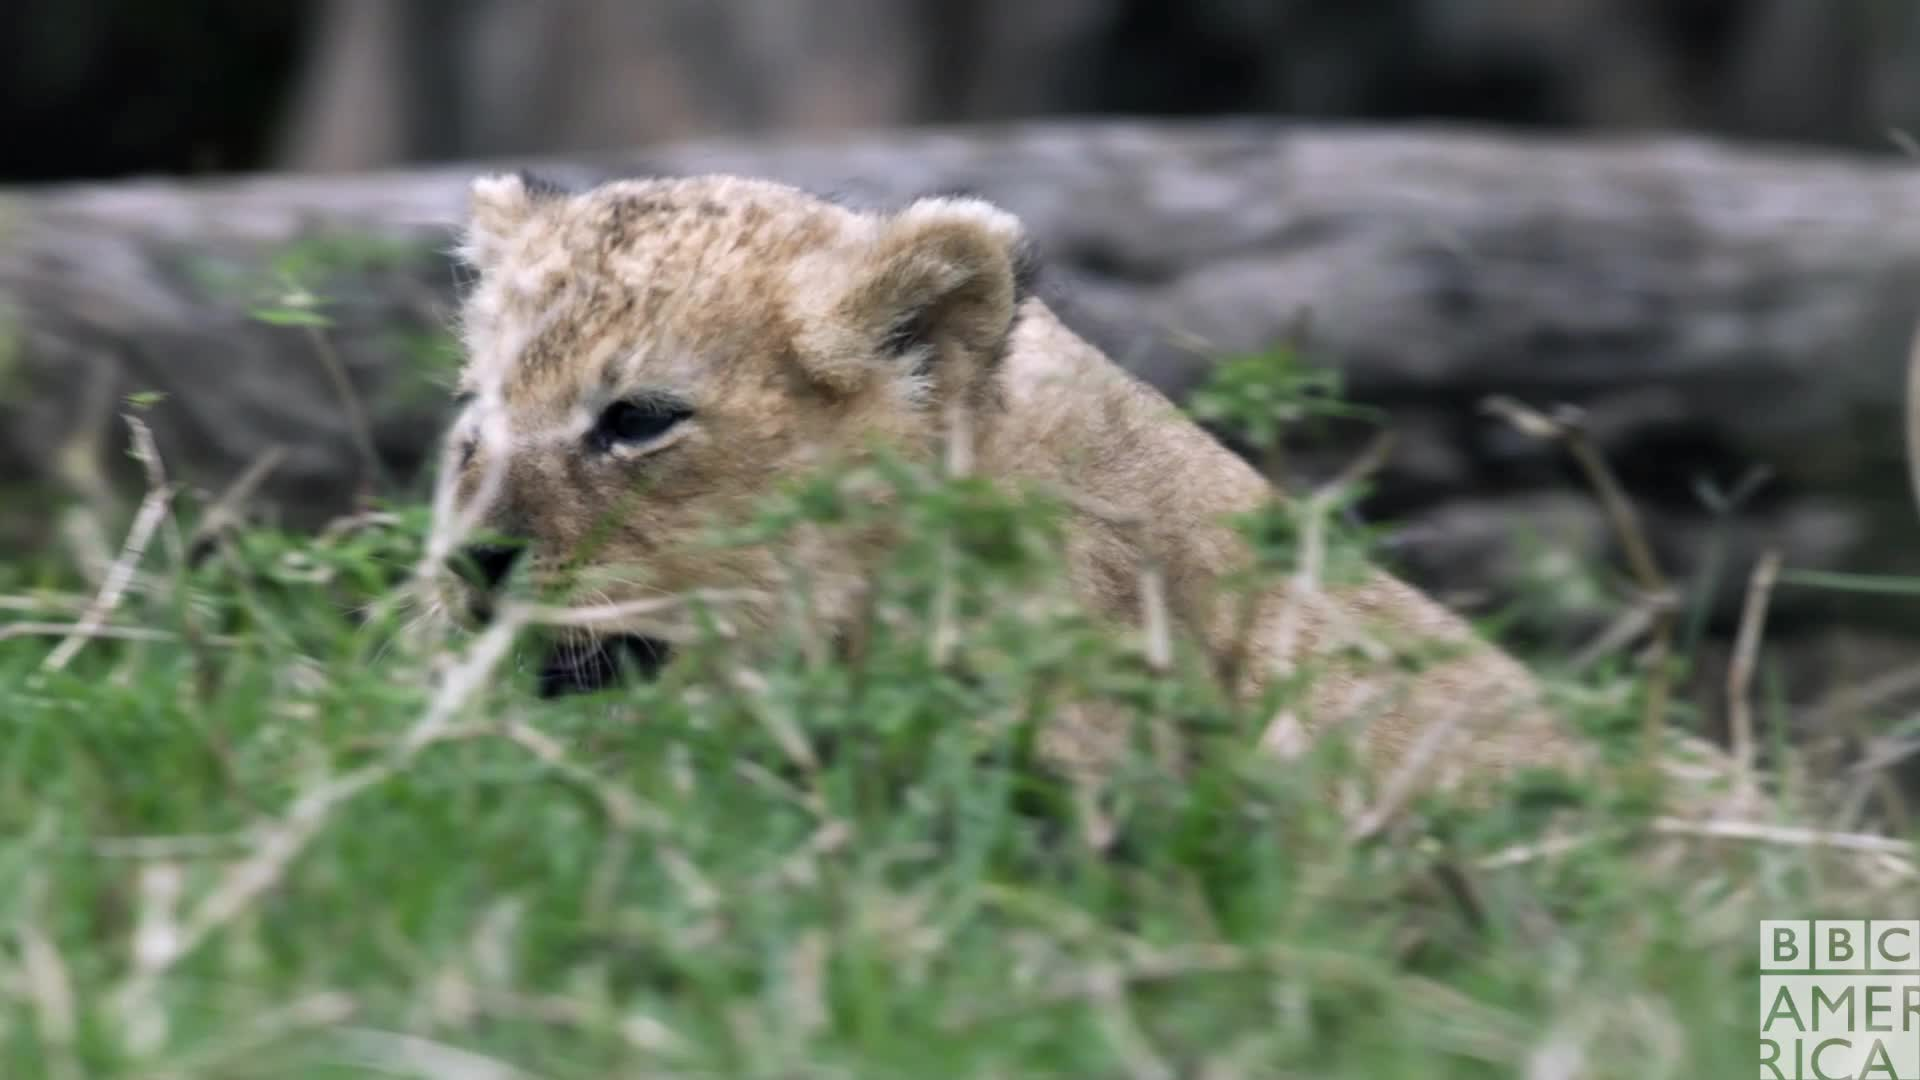 animal, animals, bbc america, bbc america: dynasties, cute, dynasties, hello, hey, lion, lions, Dynasties Lion Cub GIFs